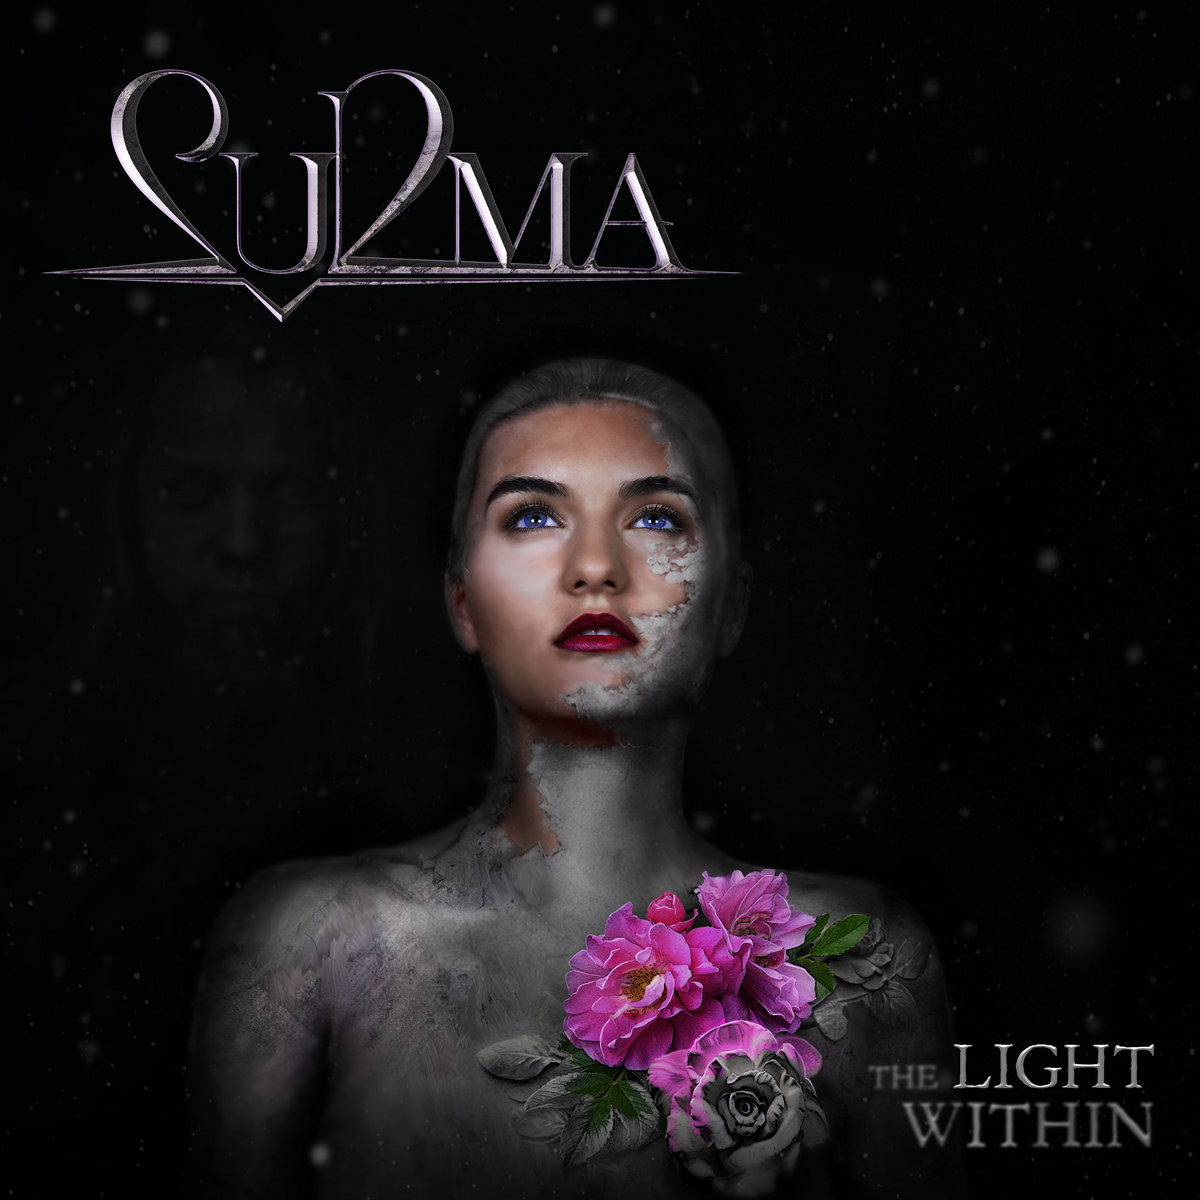 Surma - Reveal the Light Within